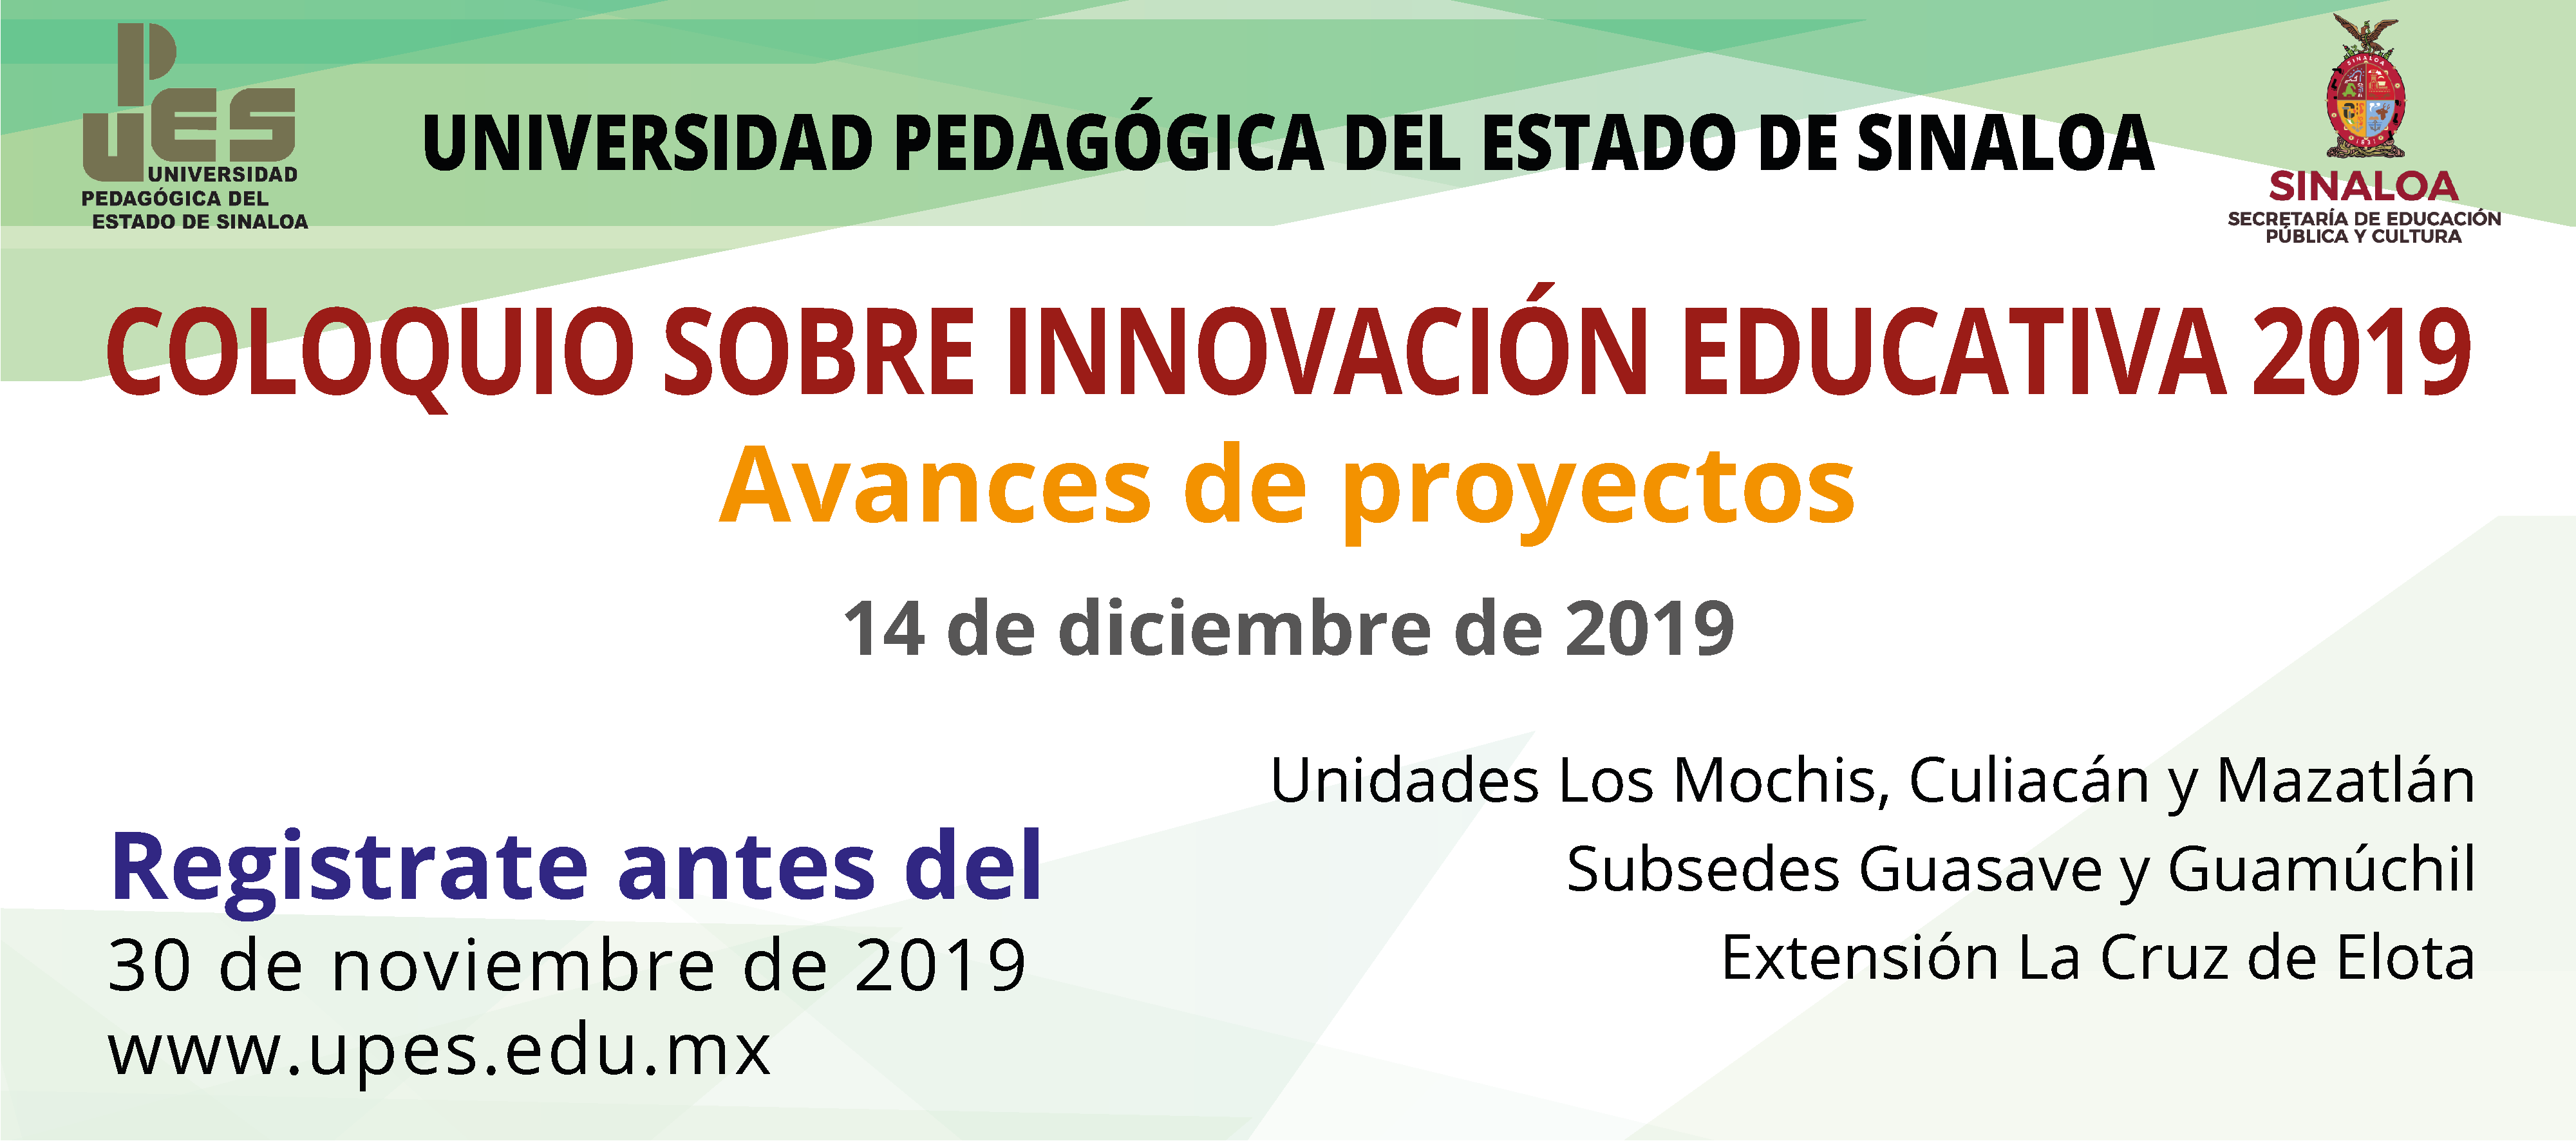 Coloquio-sobre-innovacion-educativa-2019-slider